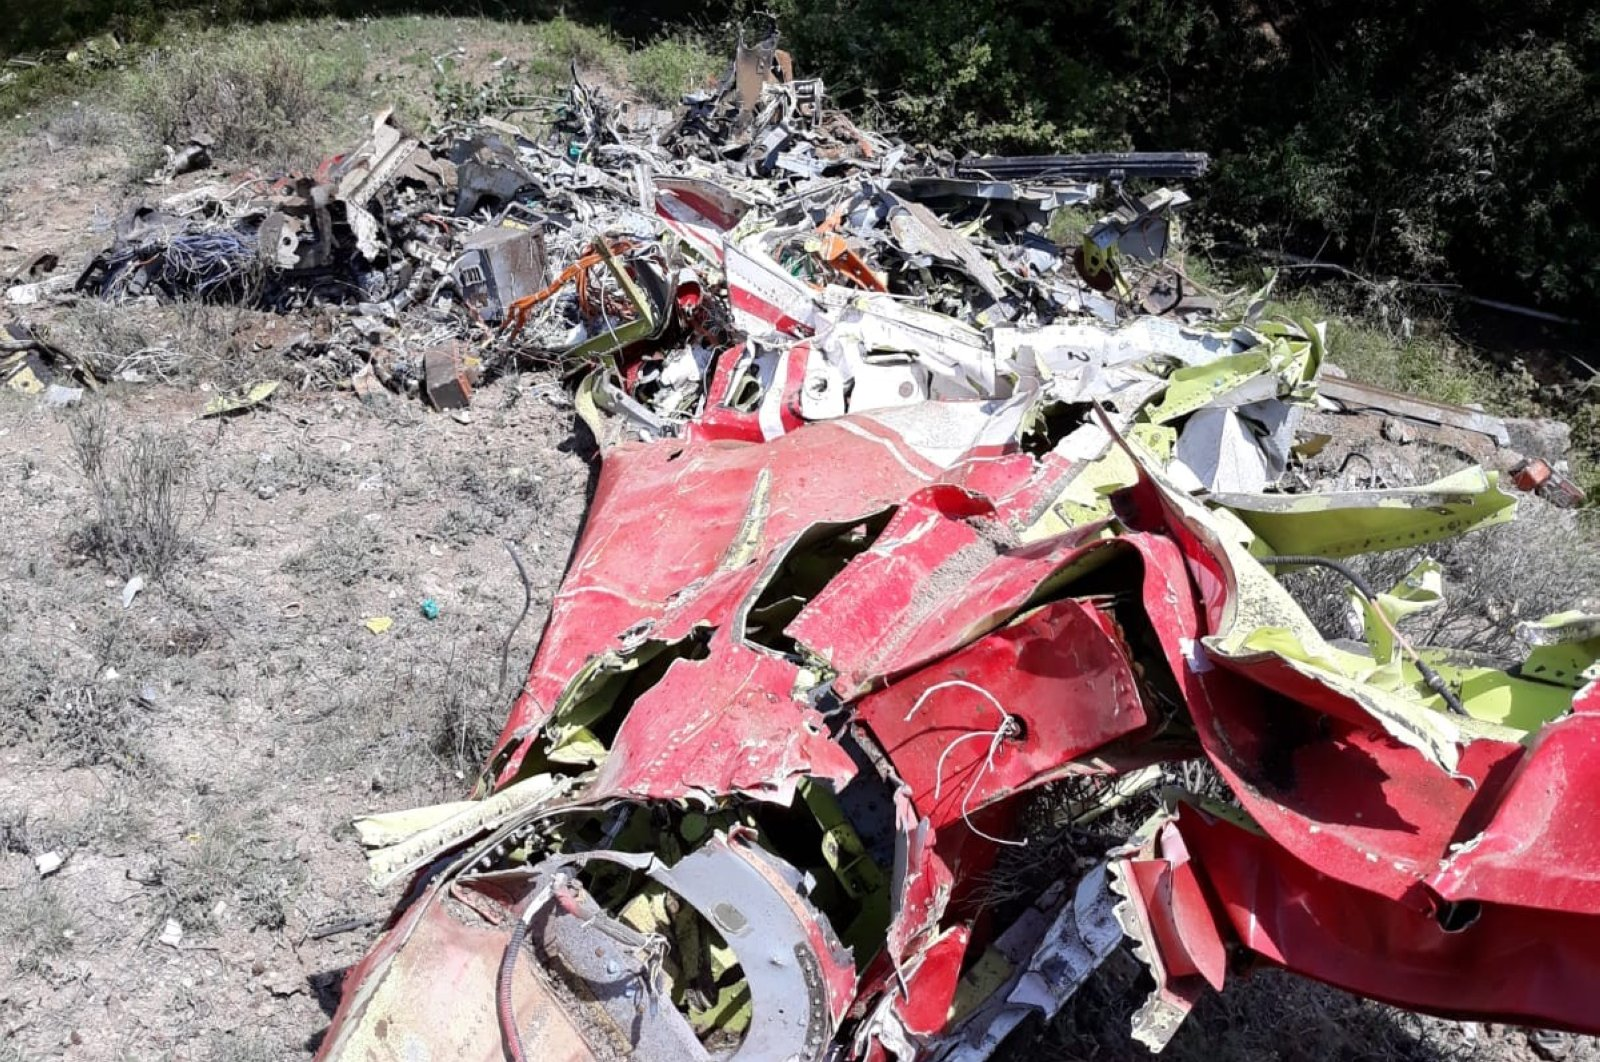 The wreckage of a HÜRKUŞ-B that crashed in Beypazarı, Ankara, June 22, 2020. (İHA Photo)